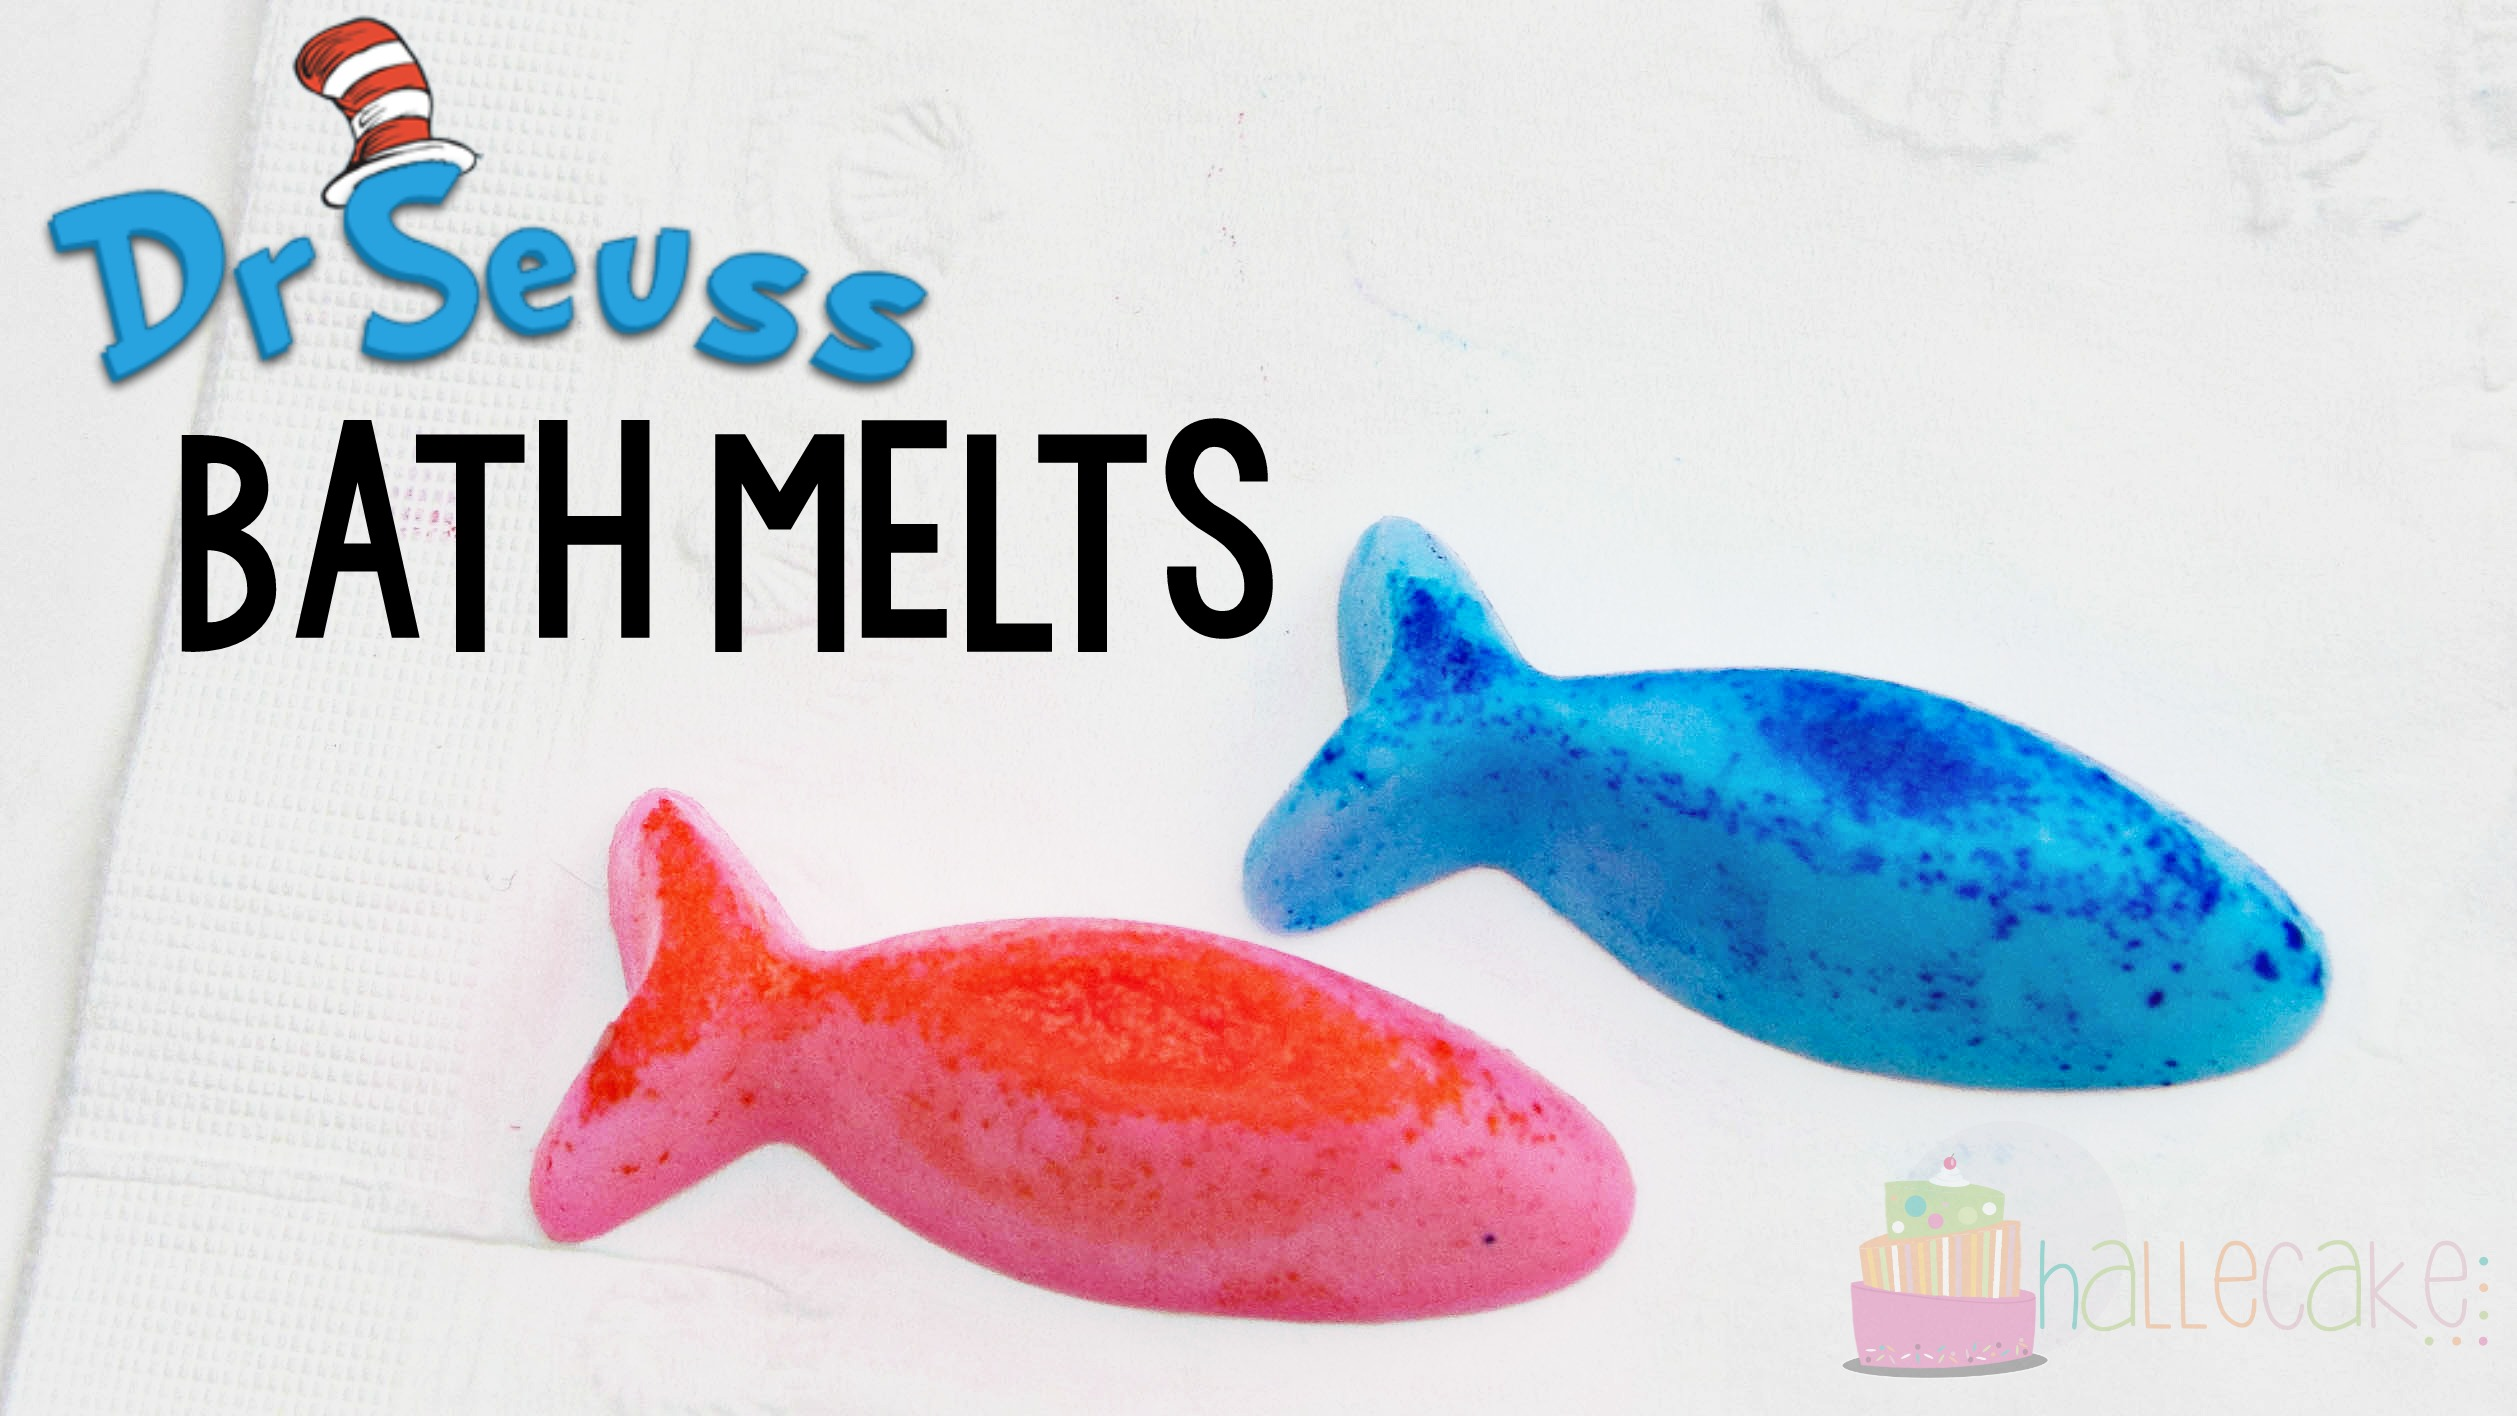 dr seuss bath melts youtube thumbnail